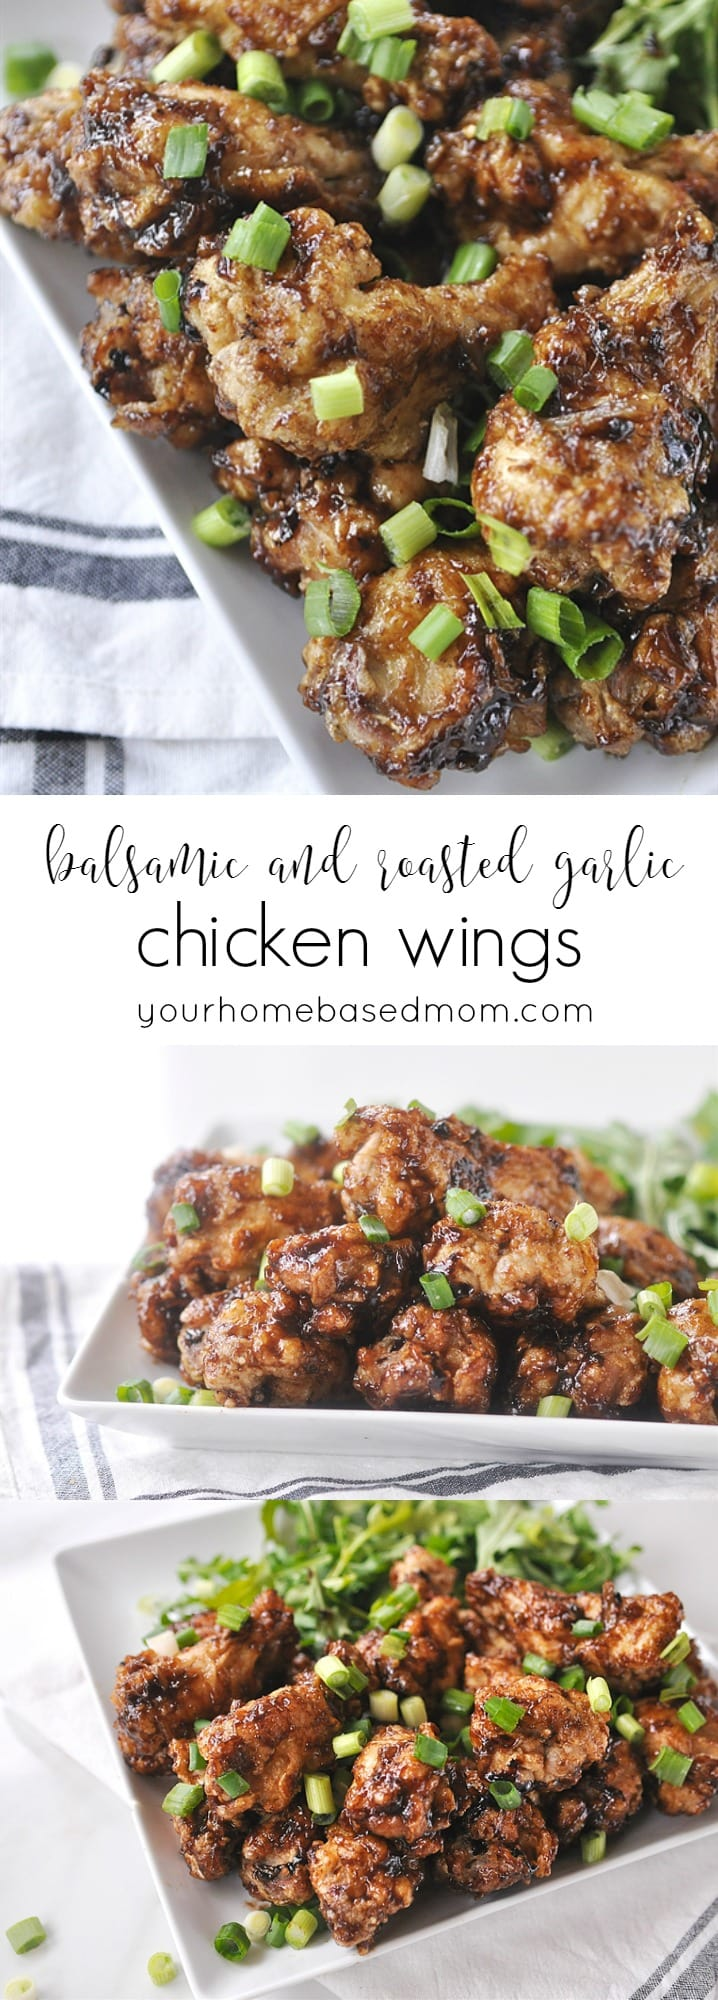 Balsamic and Roasted Garlic Chicken Wings @yourhomebasedmom.com